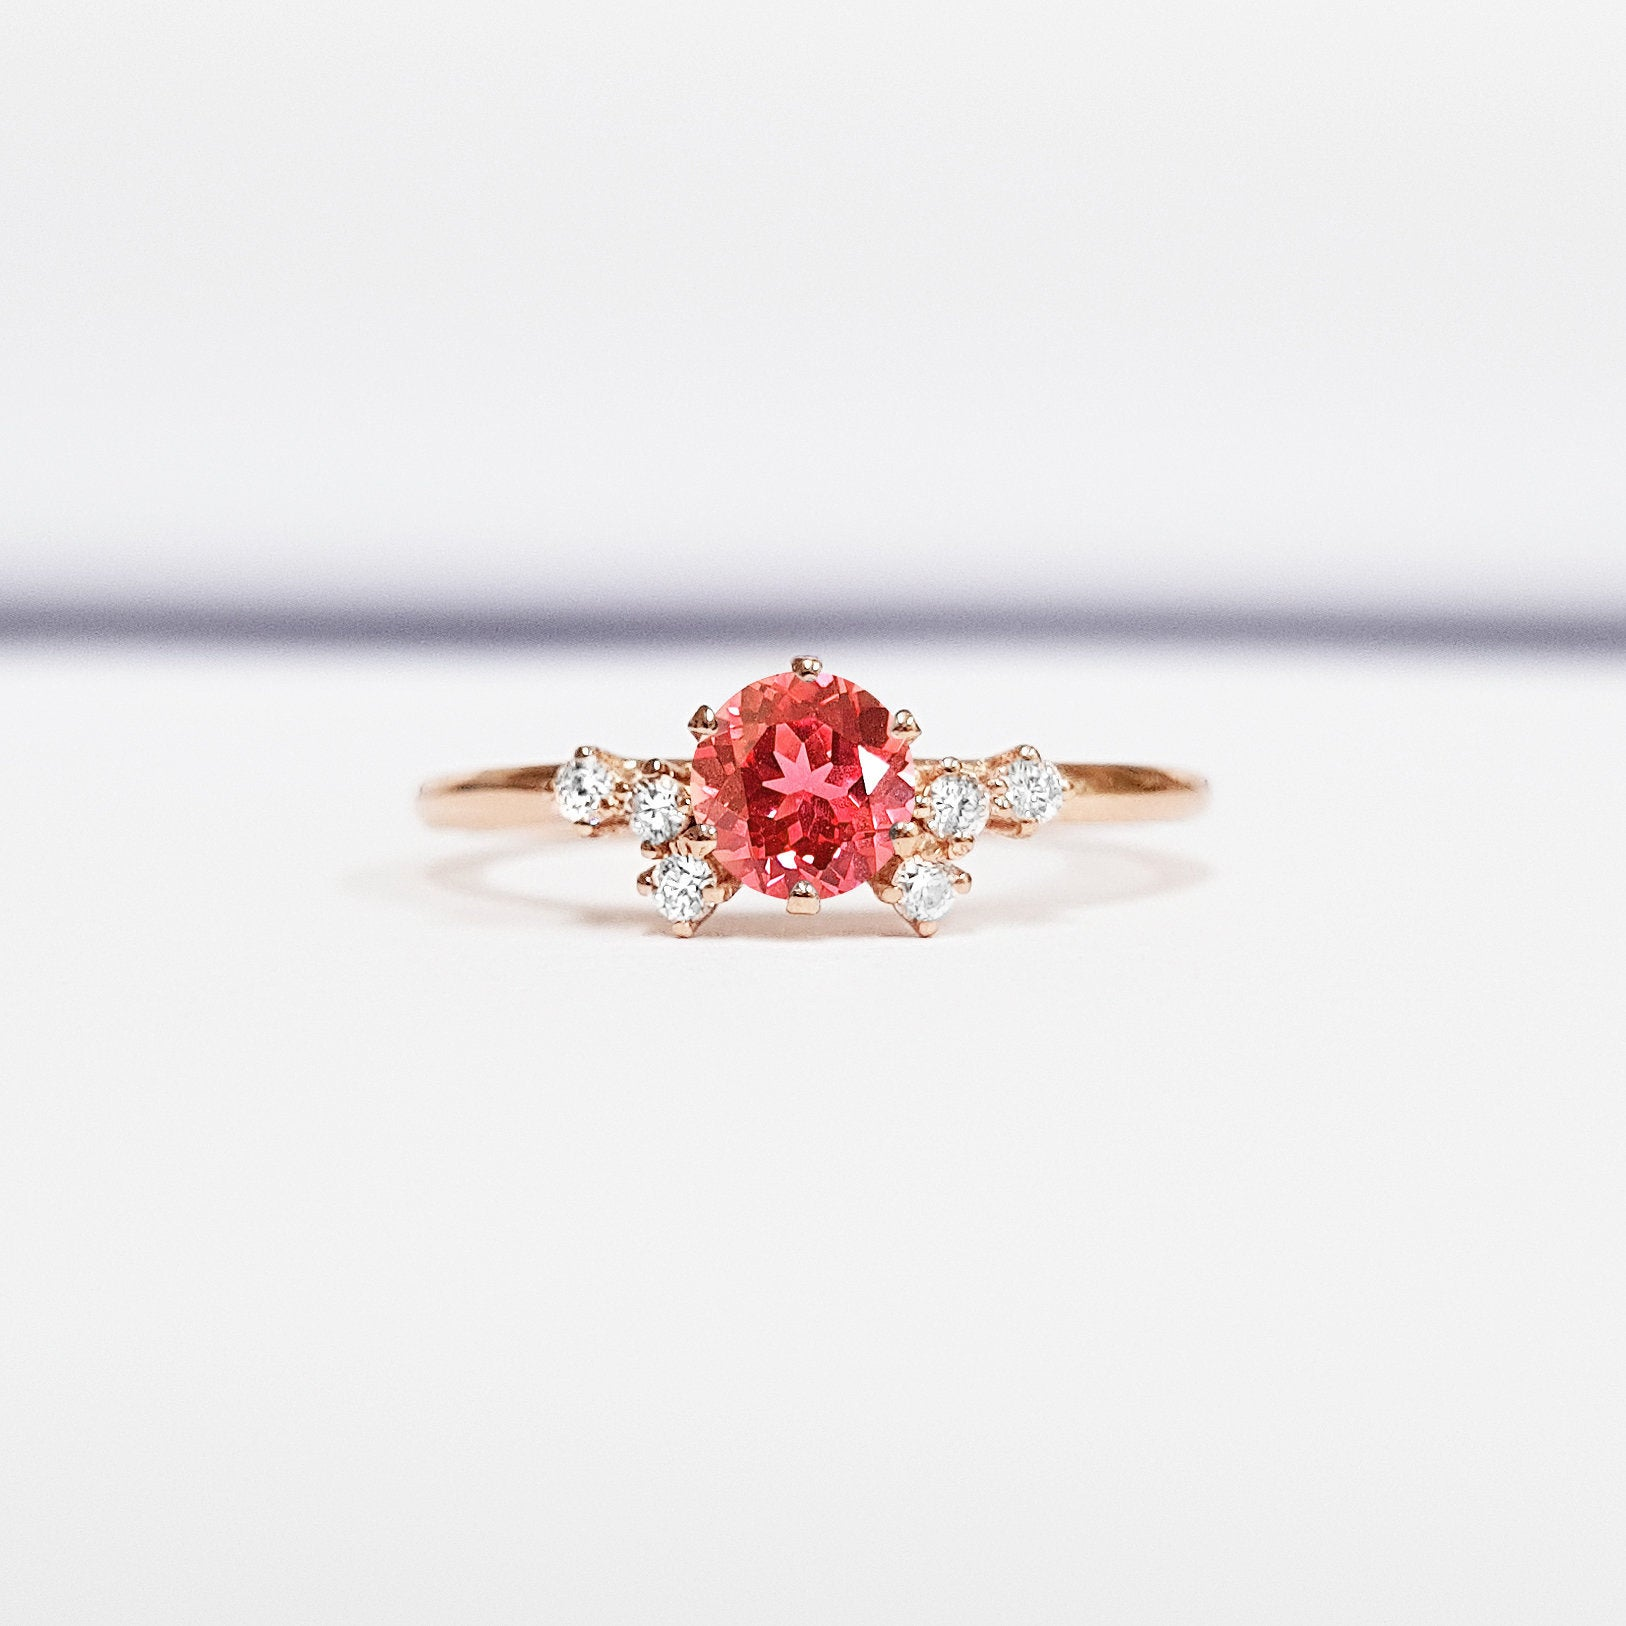 Padparadscha Sapphire And Diamond Unique Engagement Ring In White Yellow Rose Gold Or Platinum Handmade Aardvark Jewellery,Modern White Kitchen Cabinets With Grey Countertops